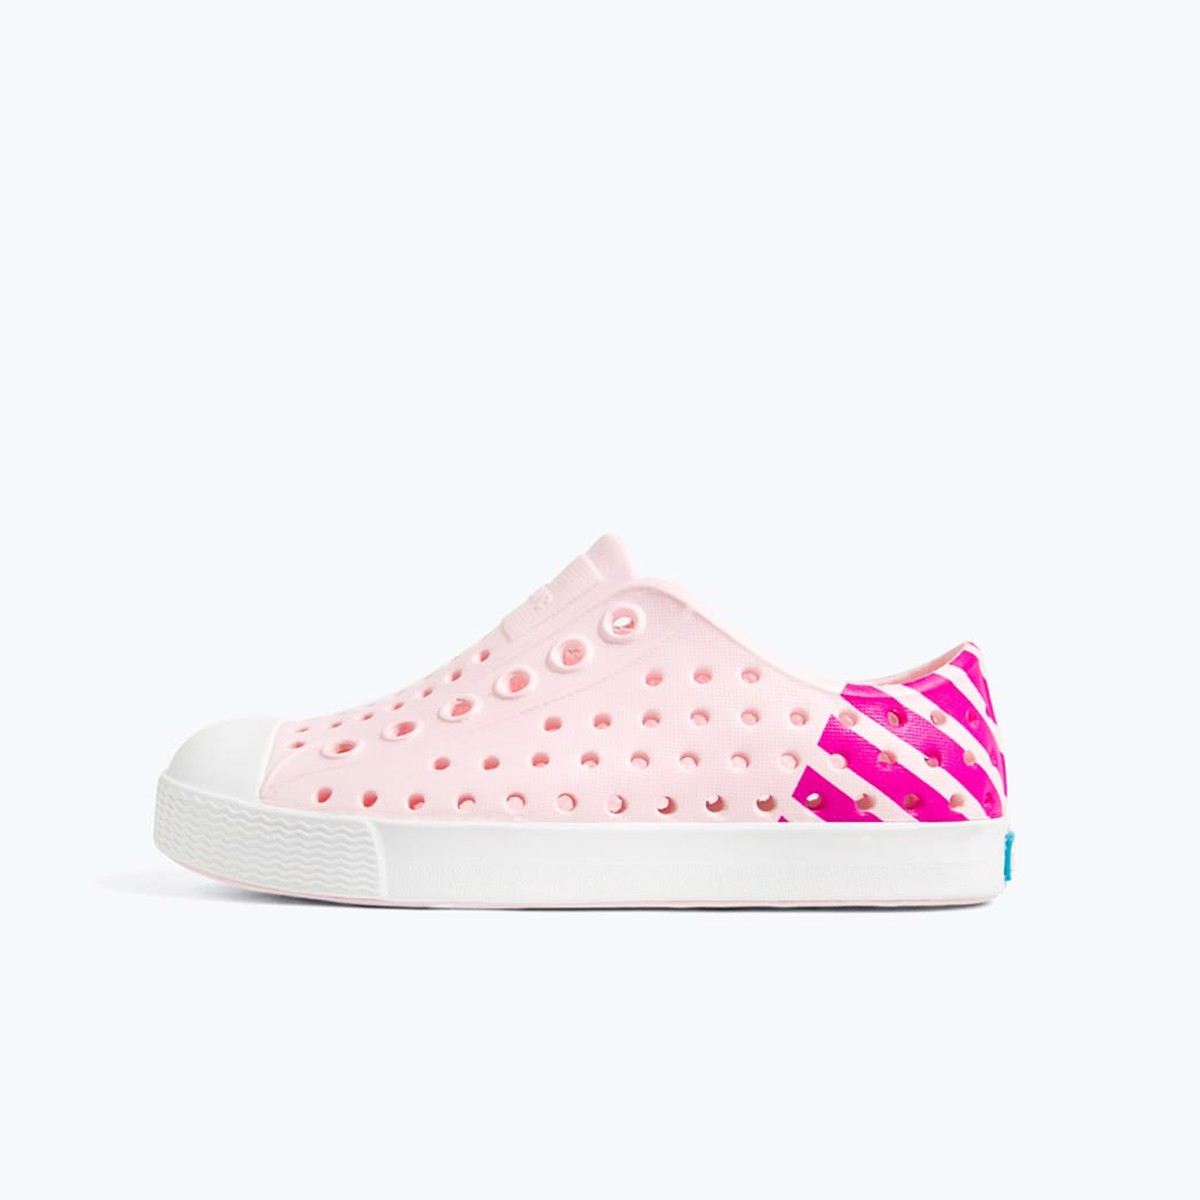 Giày native j jefferson block junior (12100102) blossom pink/ shell white/ festival glow block